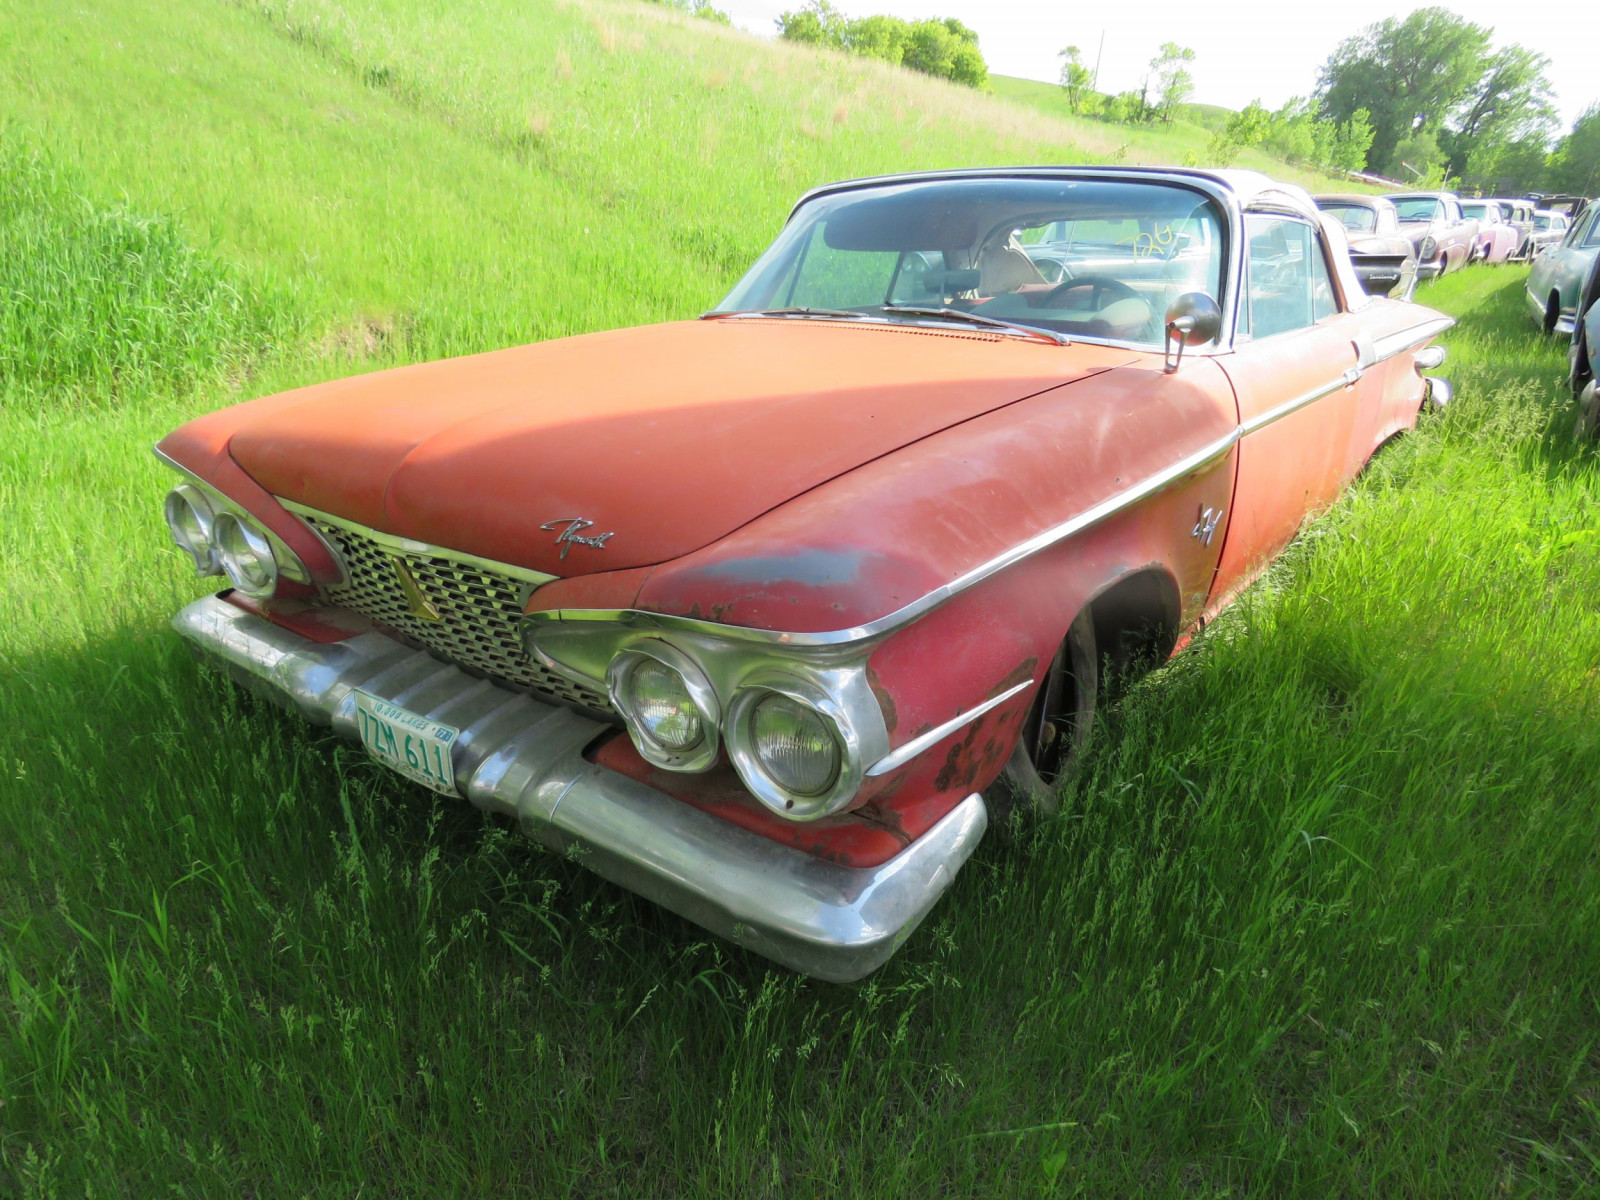 1961 Plymouth Fury Convertible 3311143965 - Image 1